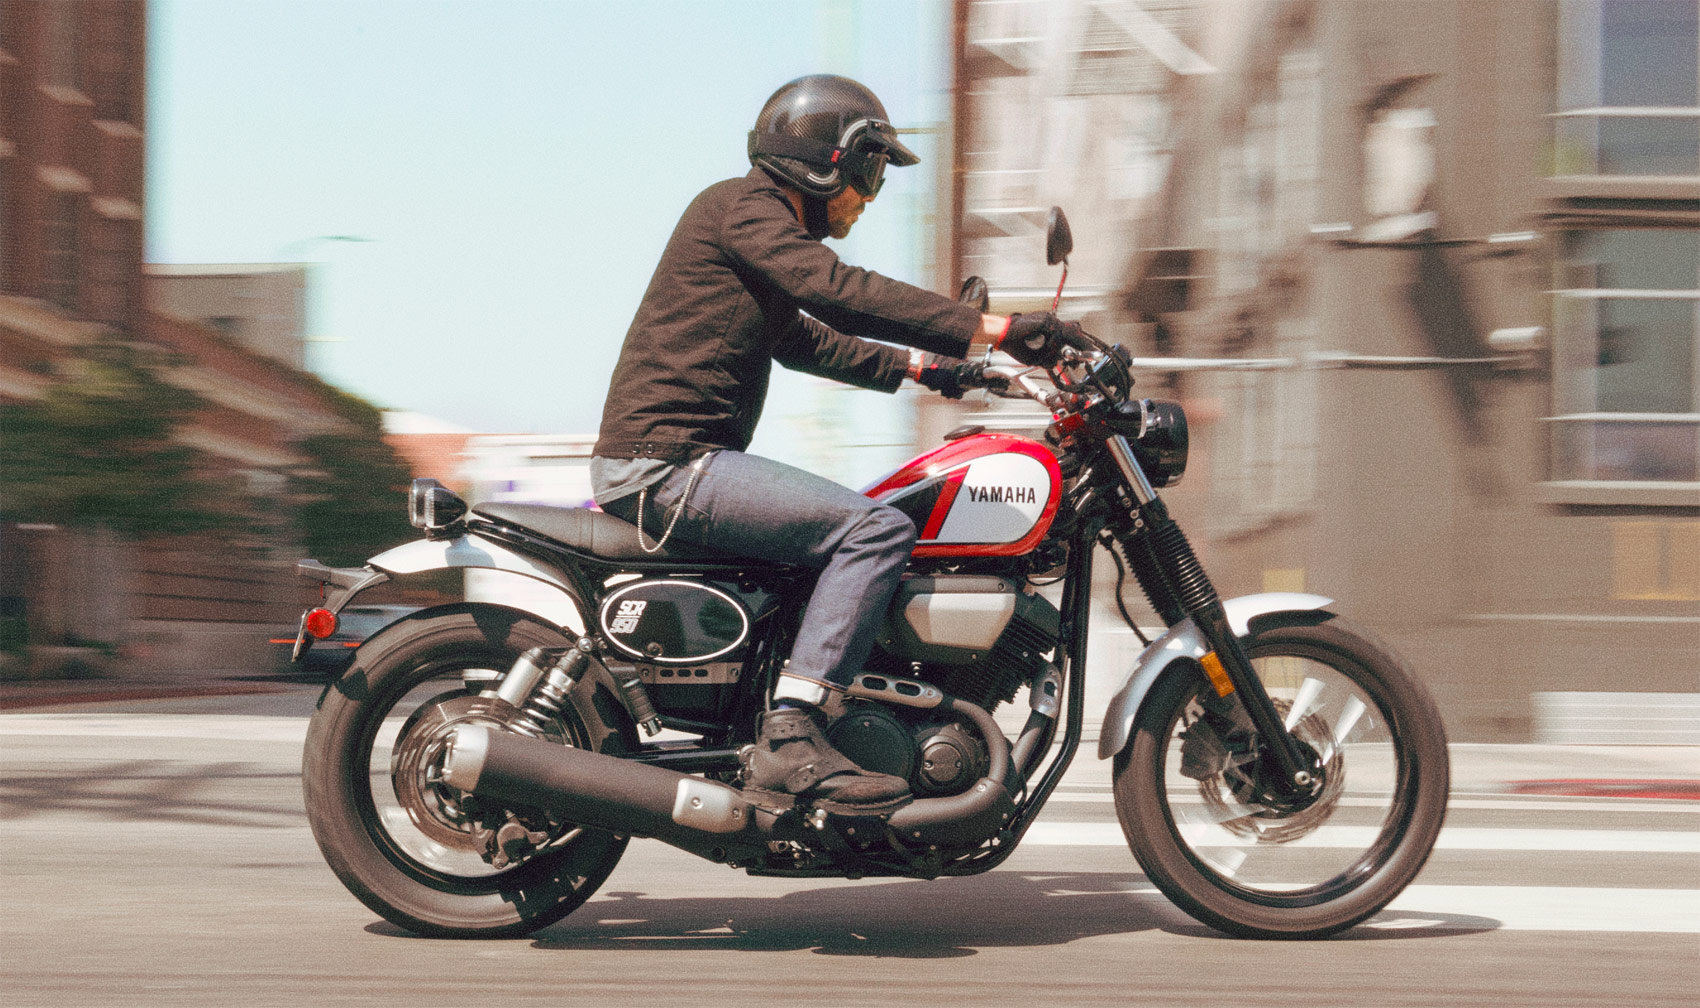 Yamaha Introduces Its Latest Sports Heritage Model – The V-Twin SCR950